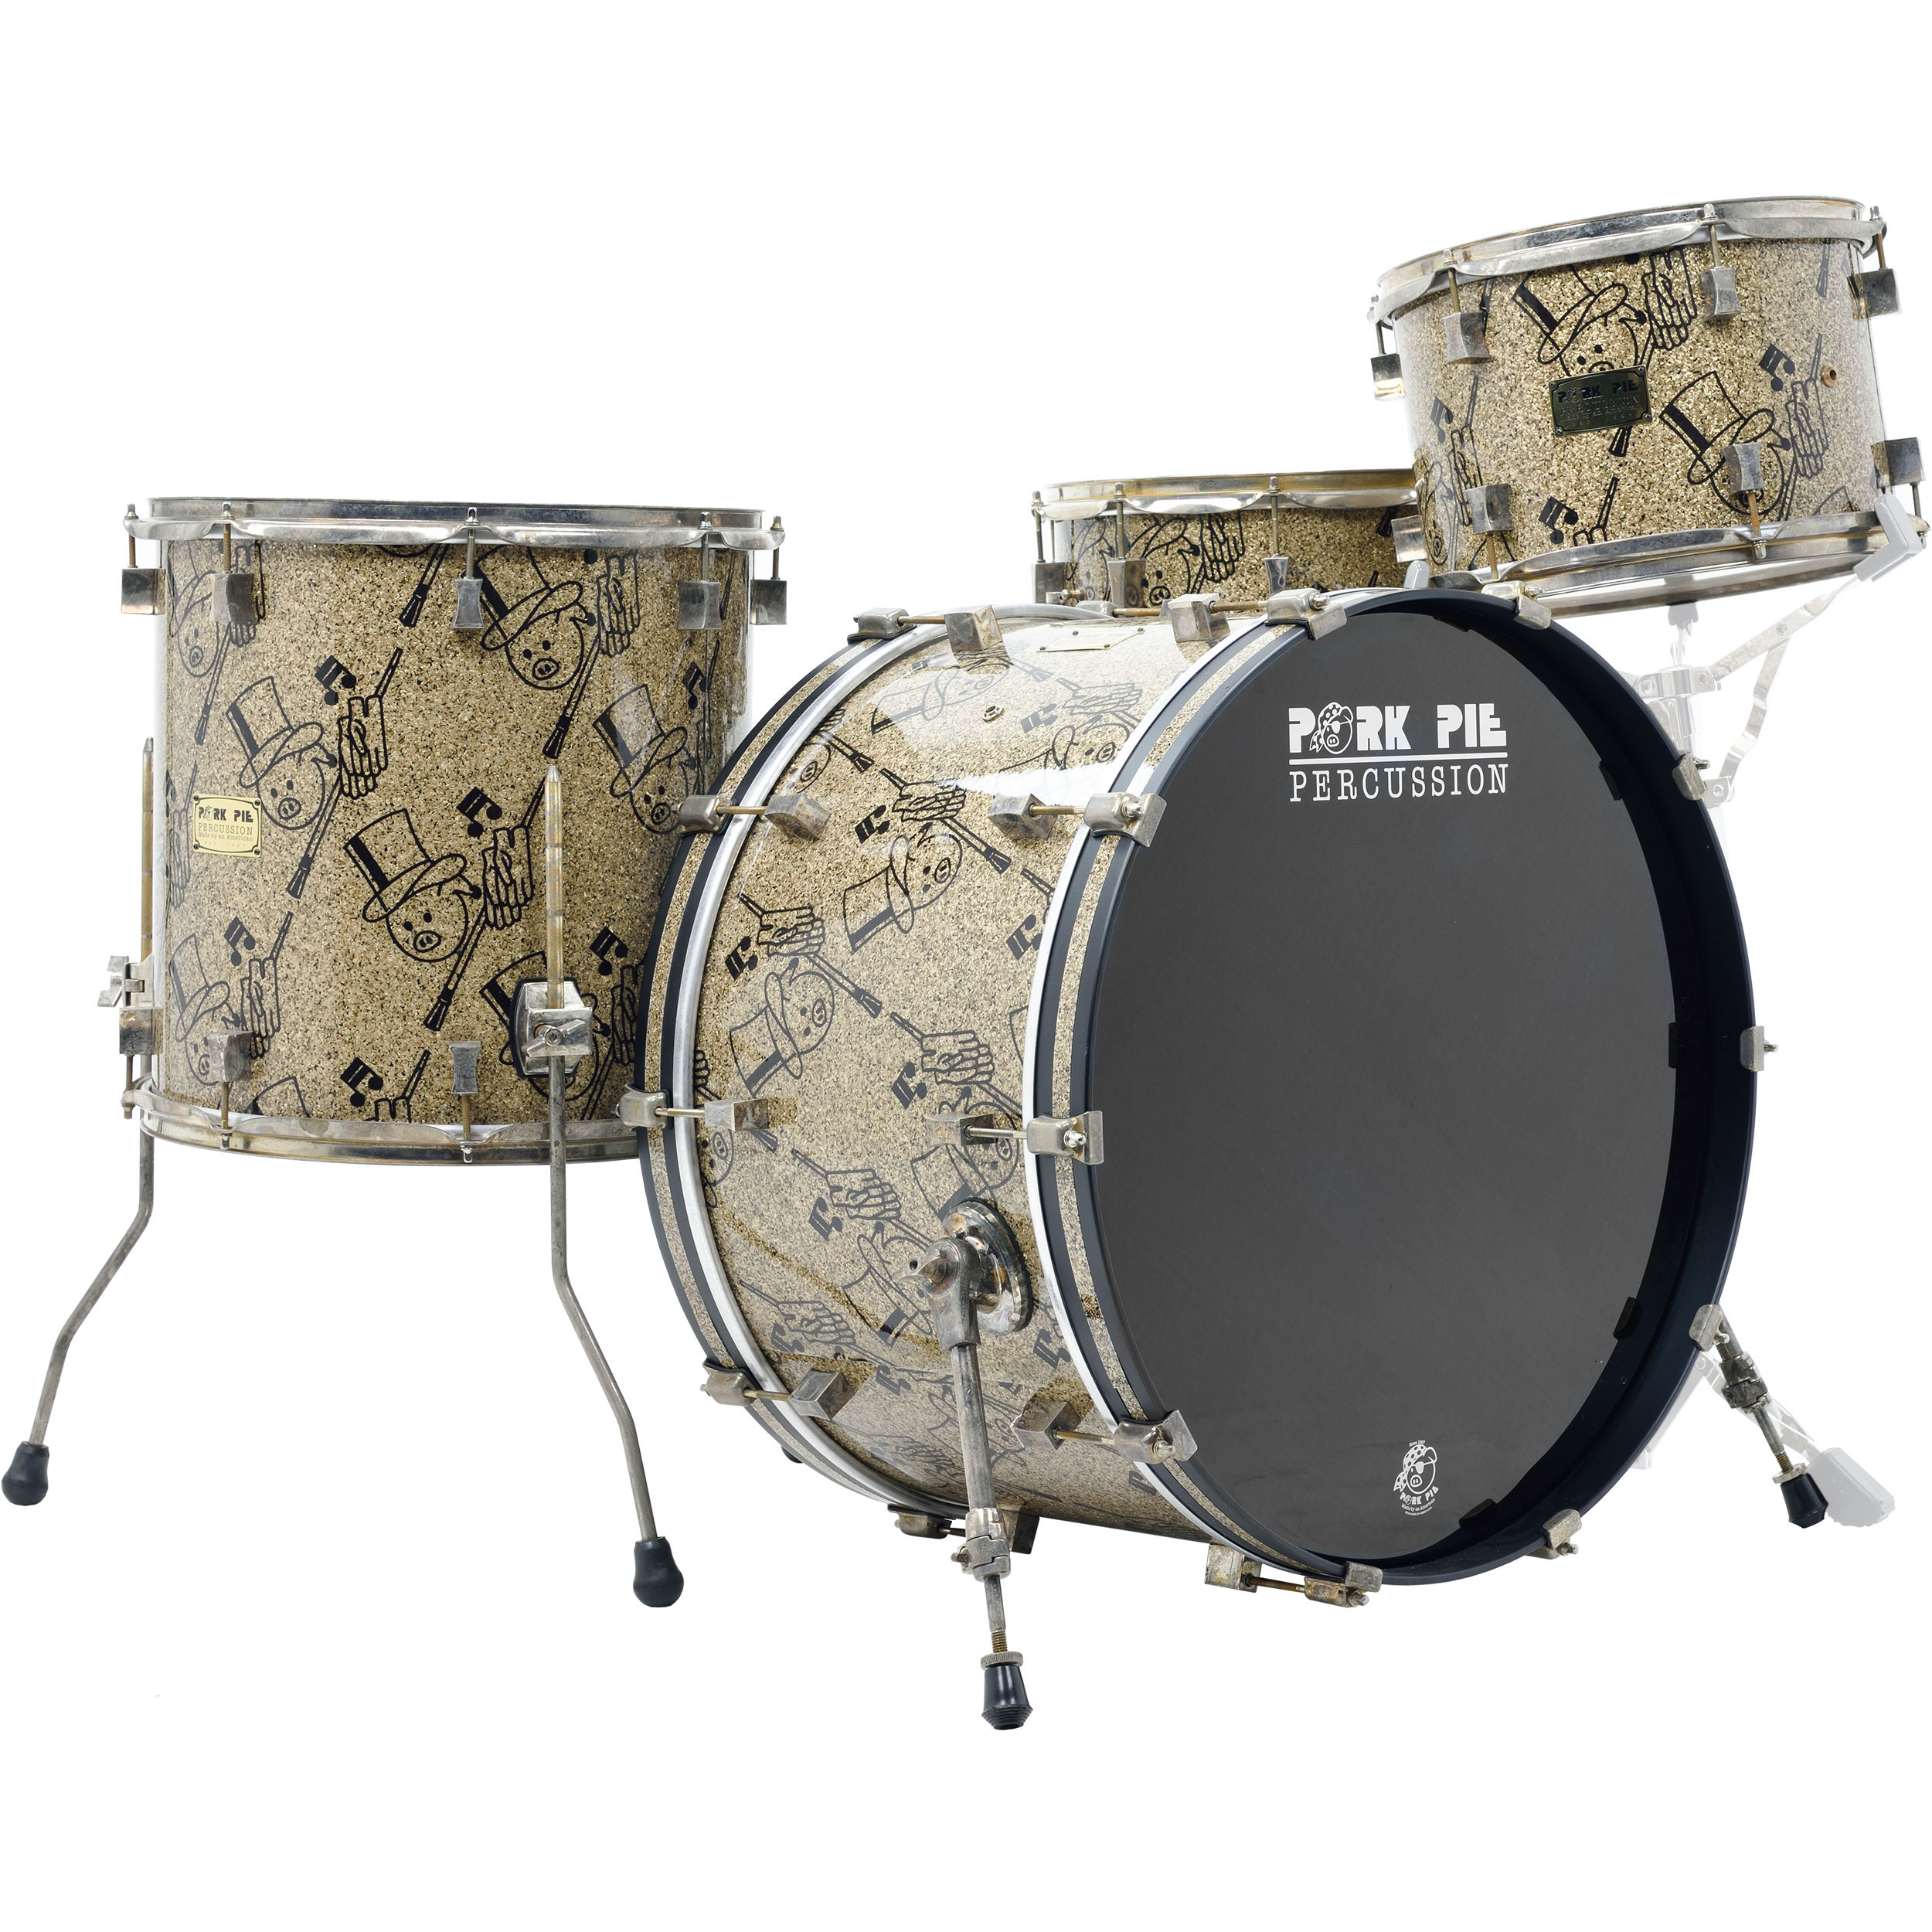 "Pork Pie Percussion USA Custom Maple Drum Set Shell Pack (24"" Bass, 13/16"" Toms, 14"" Snare) in Top Hat with Aged Hardware"